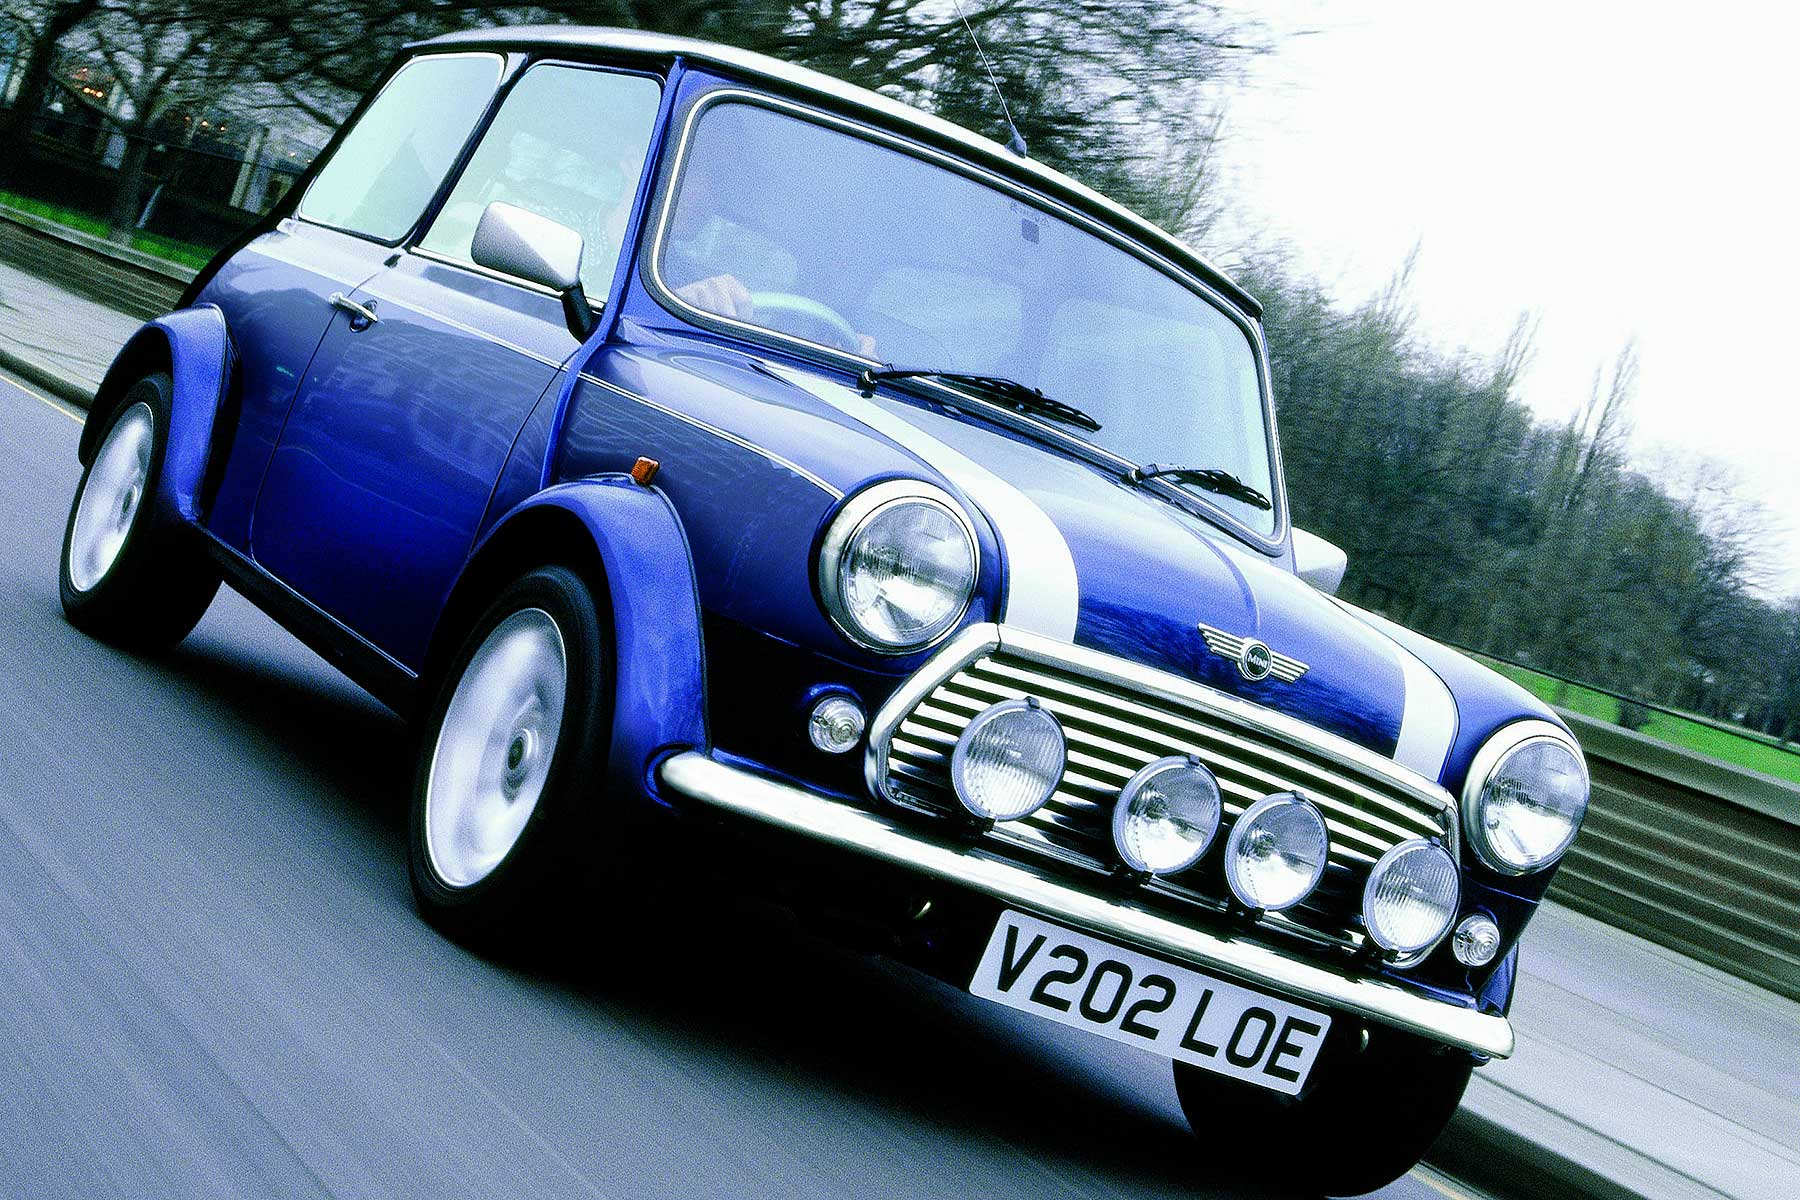 The cheapest cars to insure for 17-18 year olds: Rover Mini